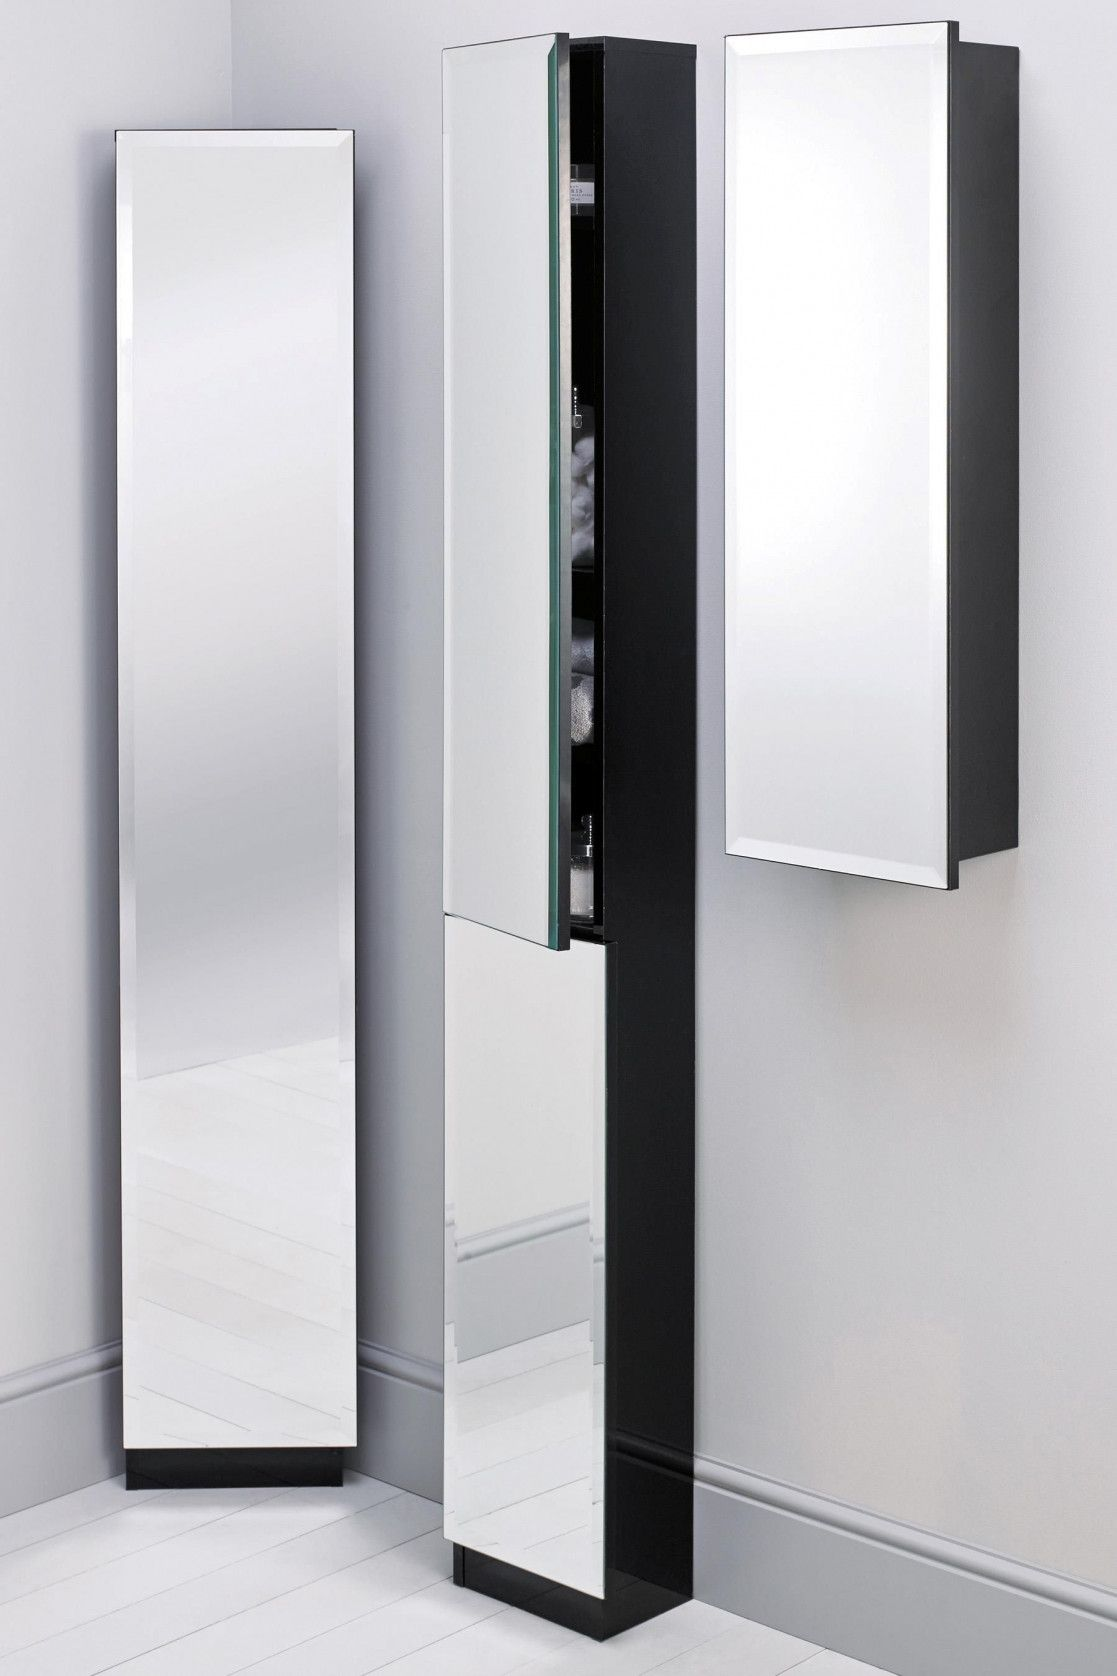 Tall Bathroom Cabinet With Mirror Pin By Rahayu12 On Interior Analogi Tall Bathroom Storage